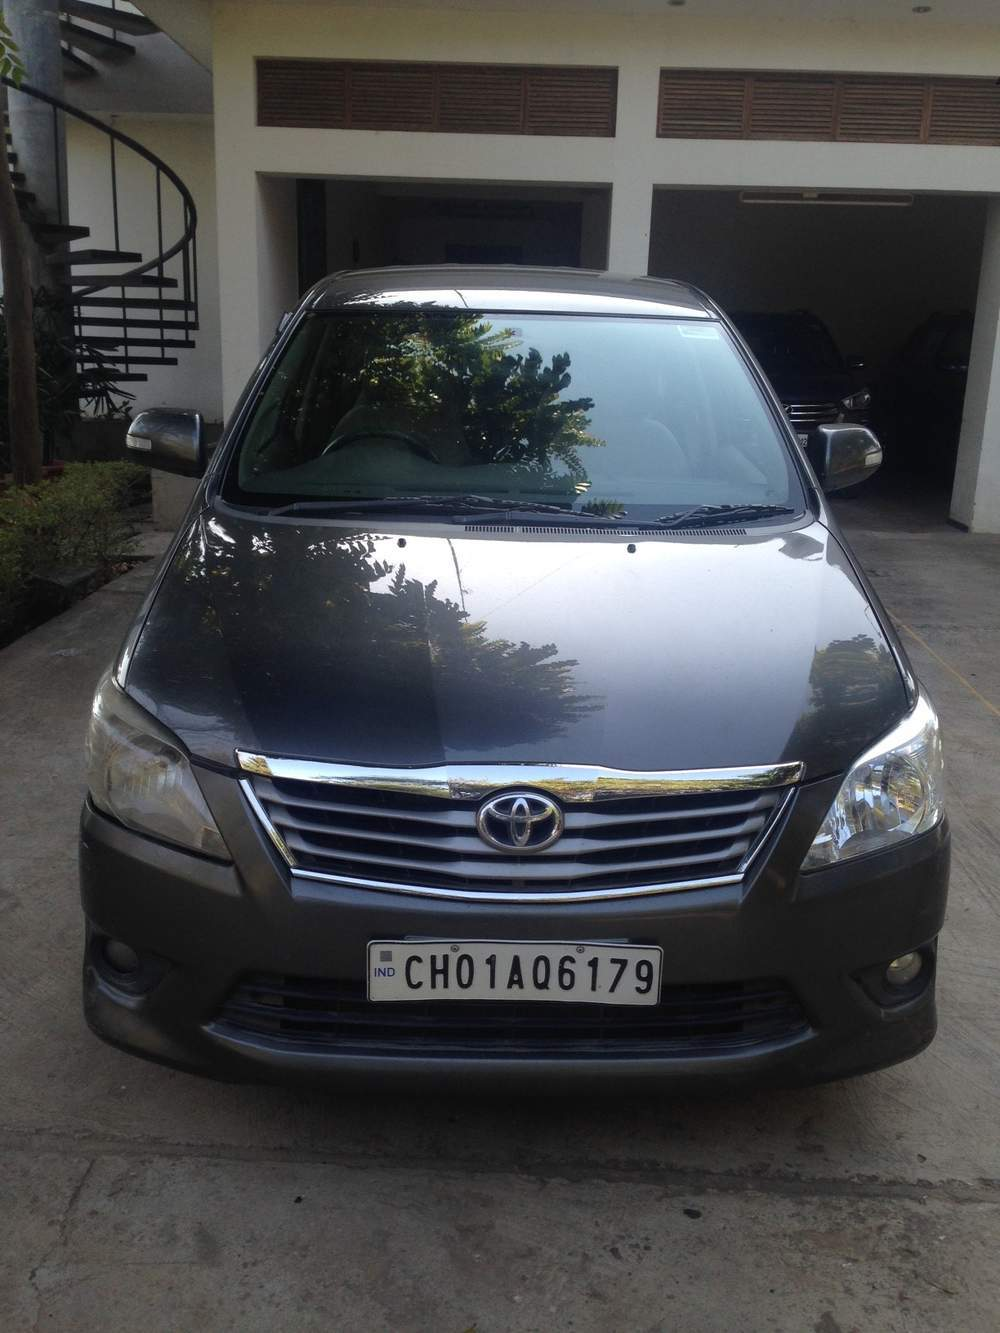 Loan On Used Cars In Chandigarh